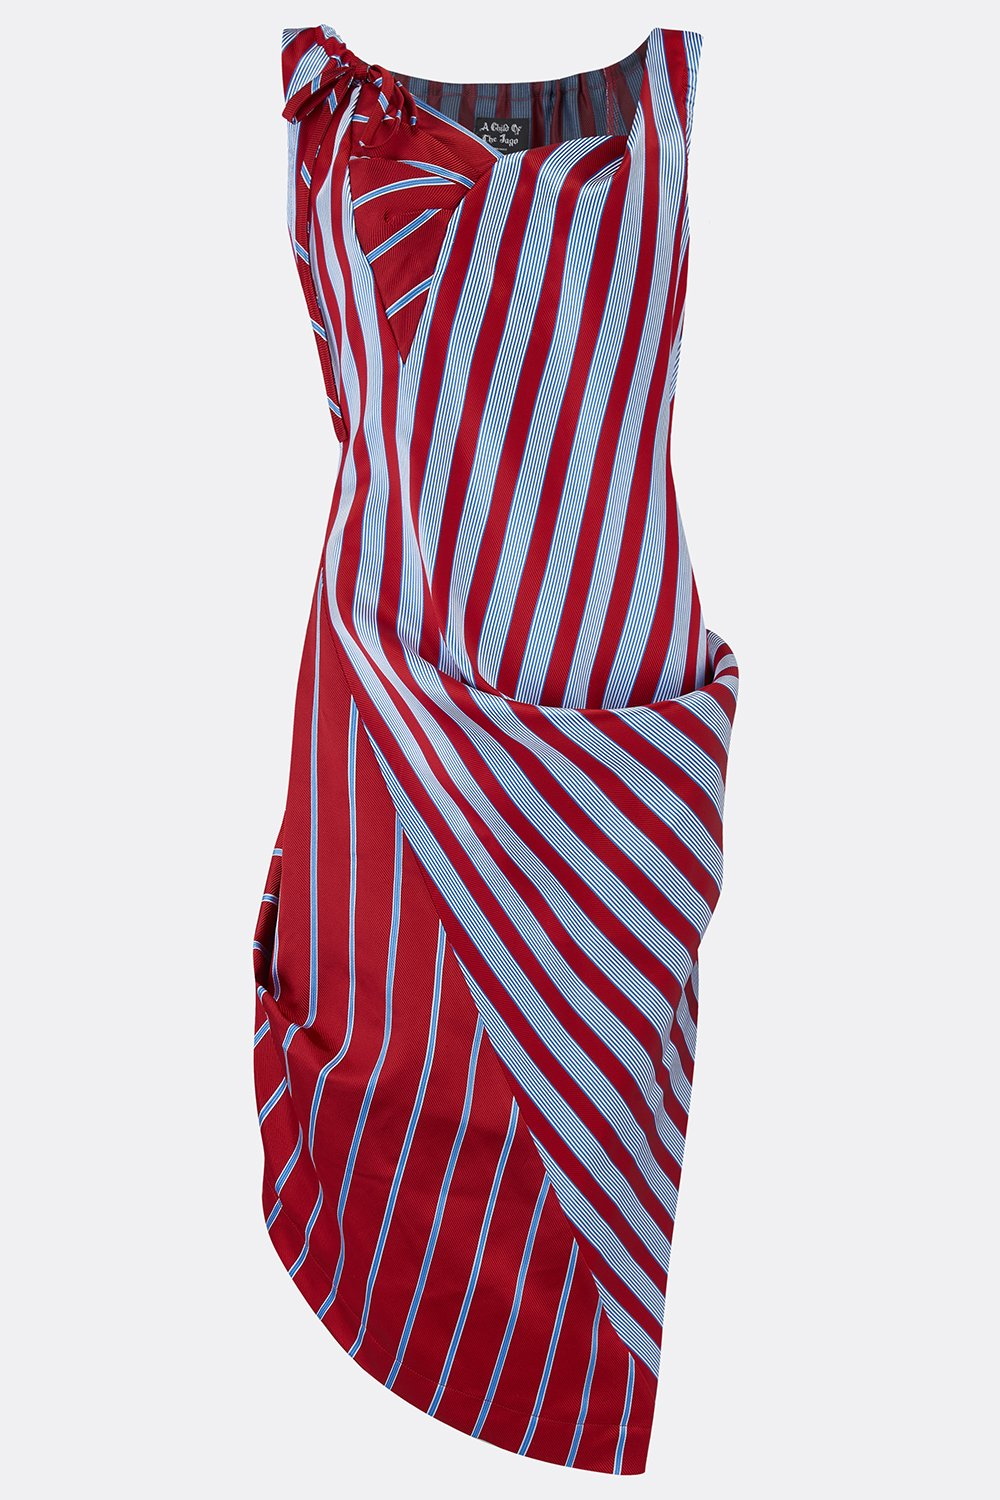 ROCHESTER SWAG DRESS IN RED STRIPE-womenswear-A Child Of The Jago